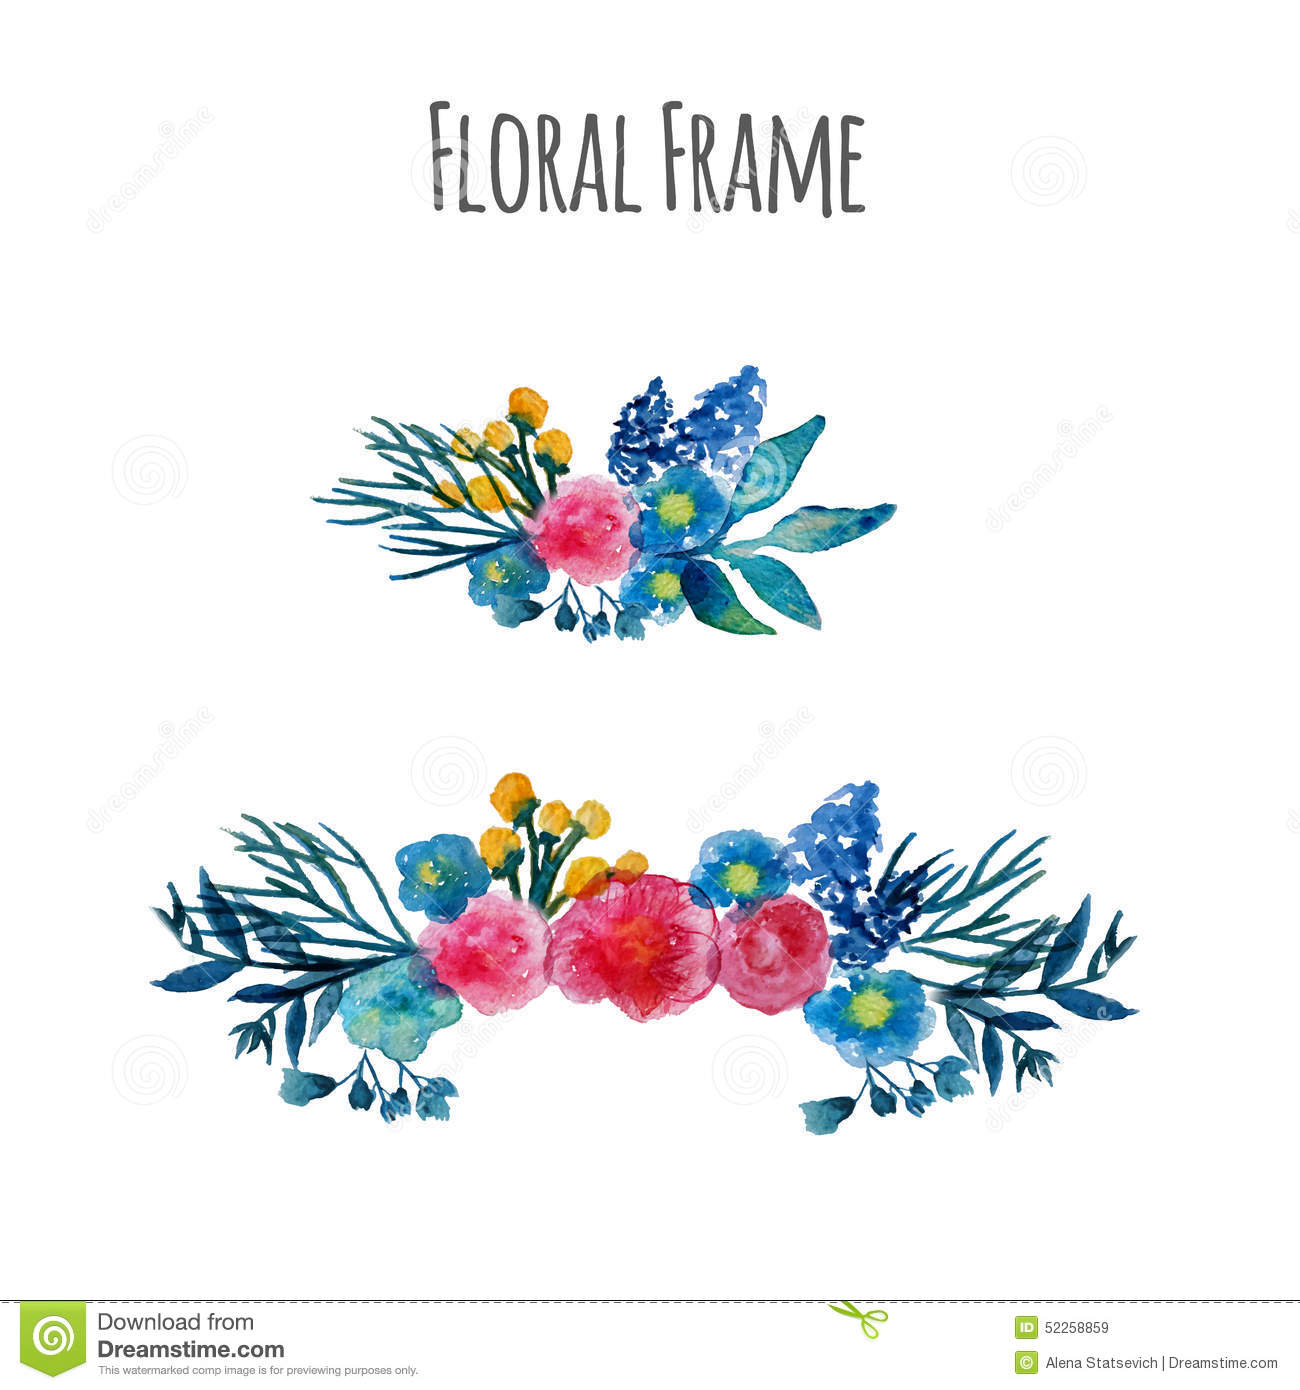 Watercolor hand drawn flower wreath for design artistic isolated - Watercolor Vector Wreath Floral Frame Design Stock Vector